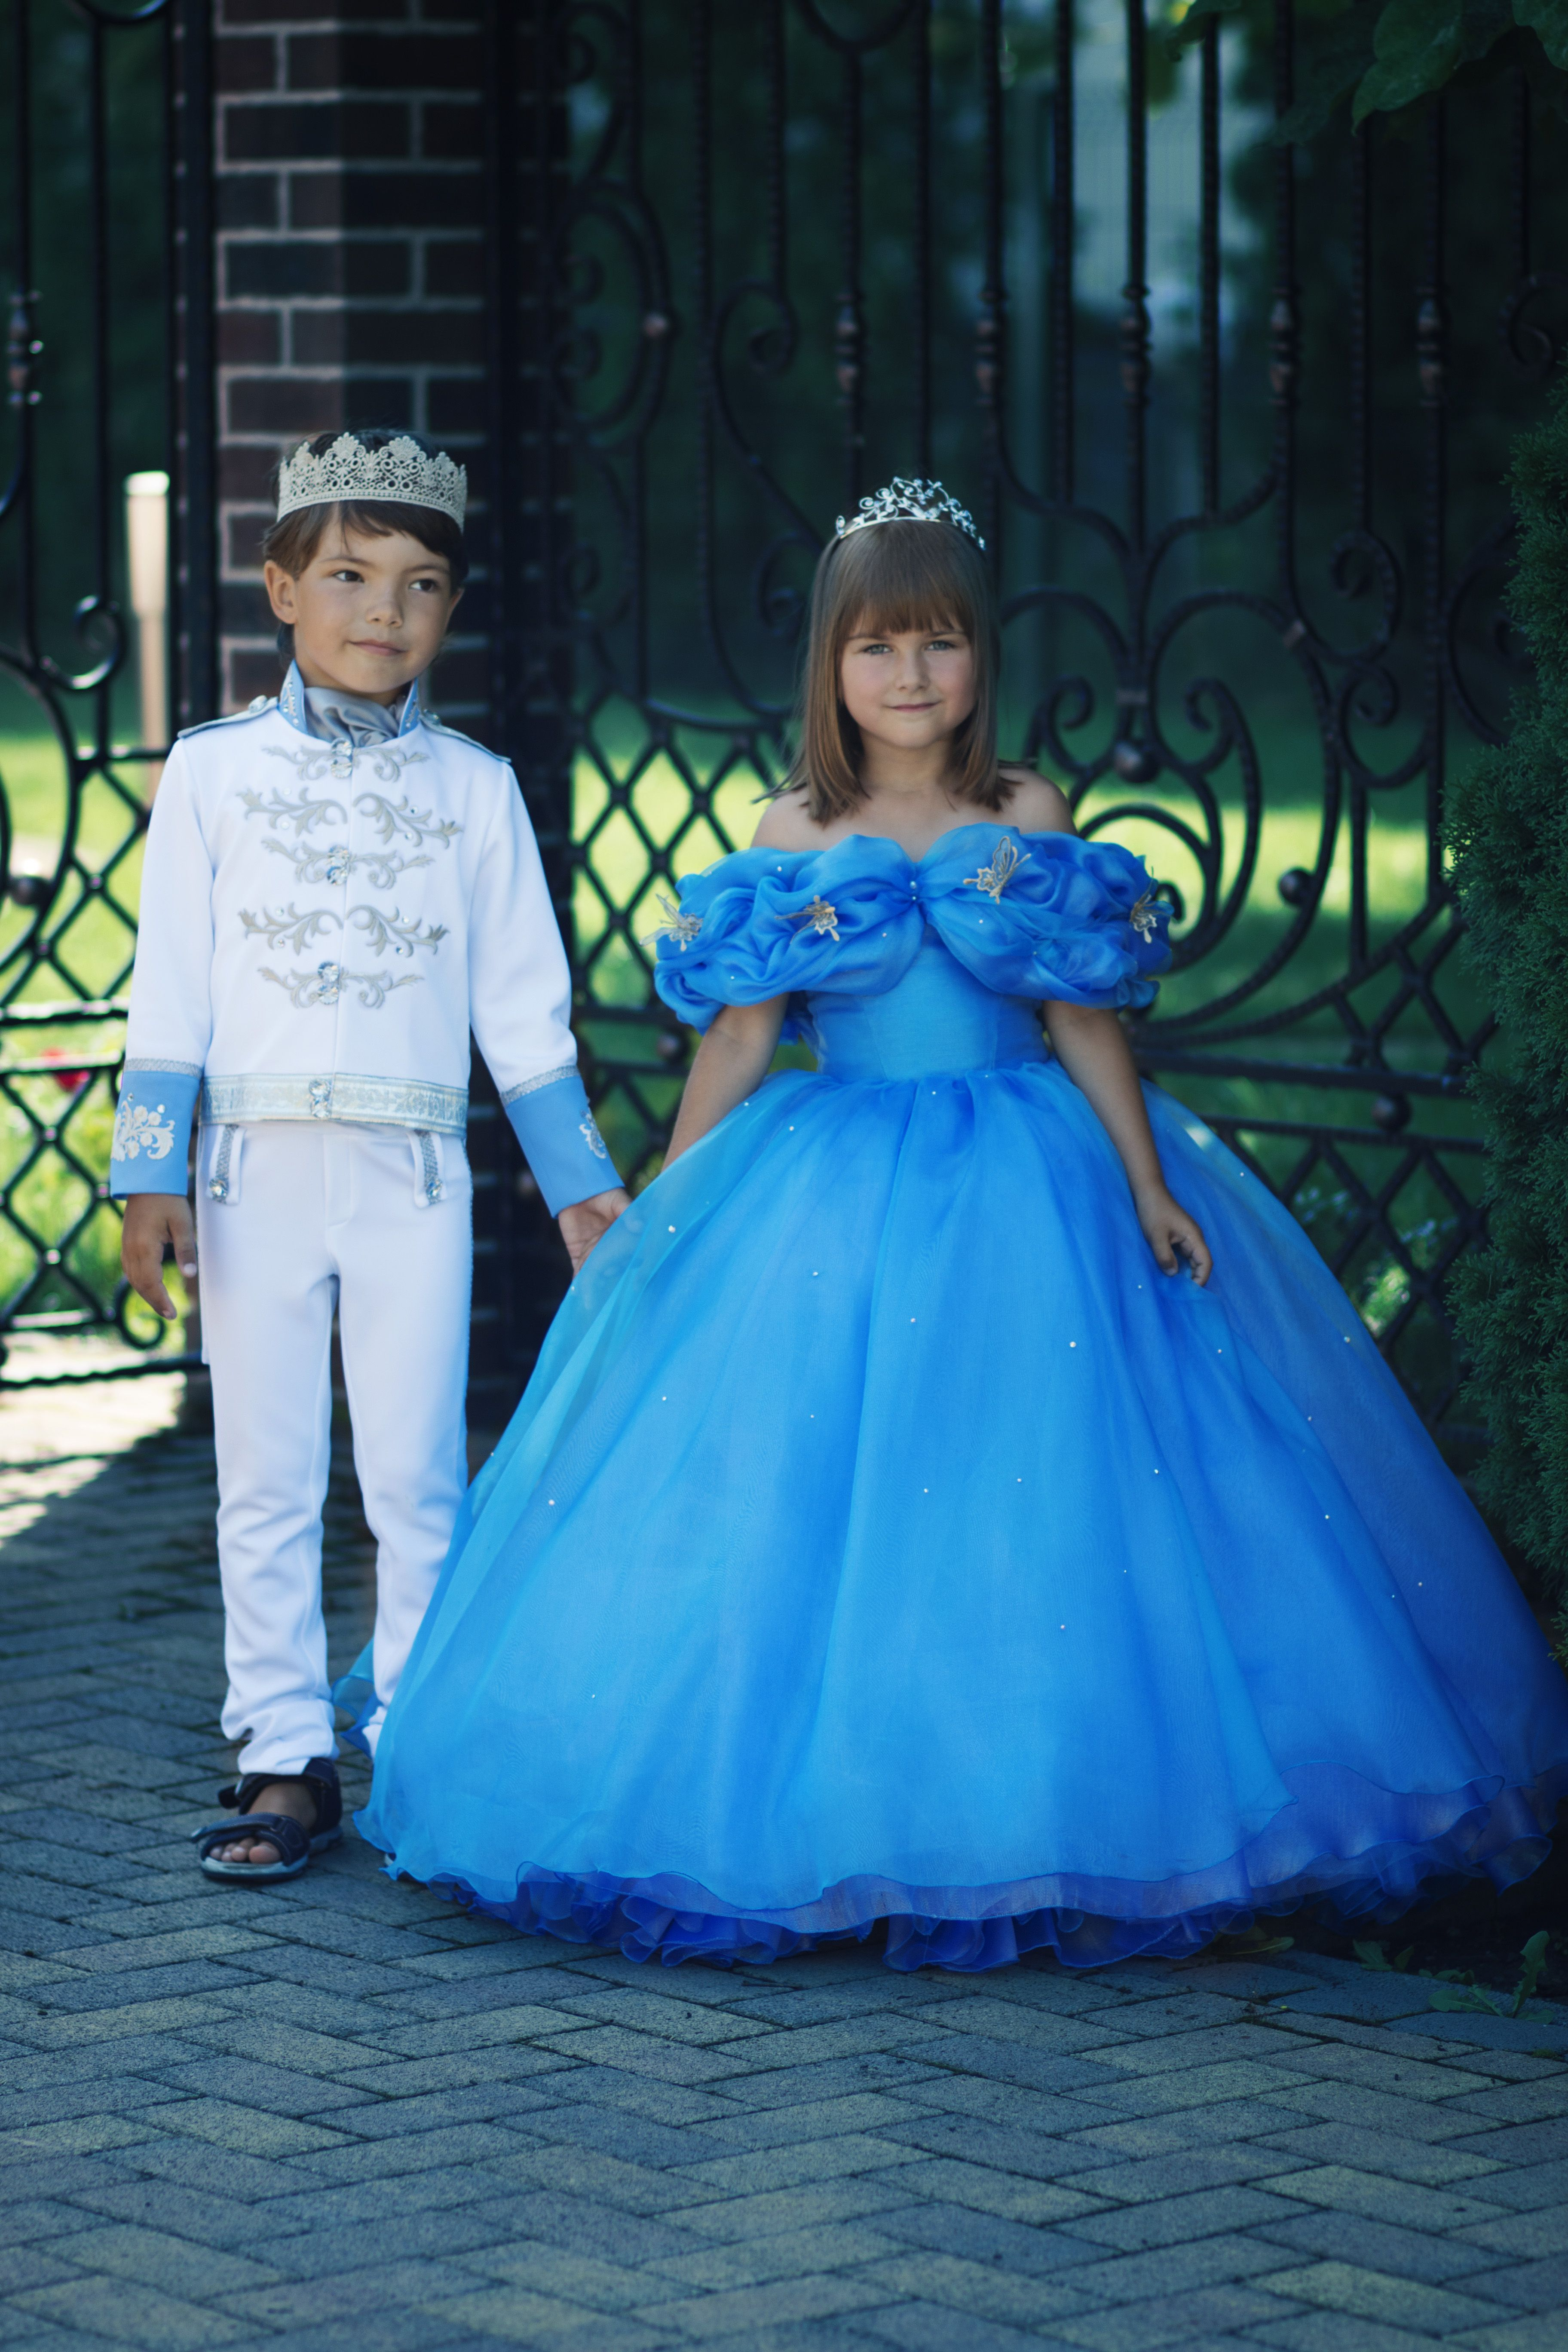 Cinderella And Prince Charming Costumes For Boy And Girl Disney Cinderella  Movie 2015 Cosplay Halloween Outfit Wedding Ring Bearer Suit And Flower  Girl ...